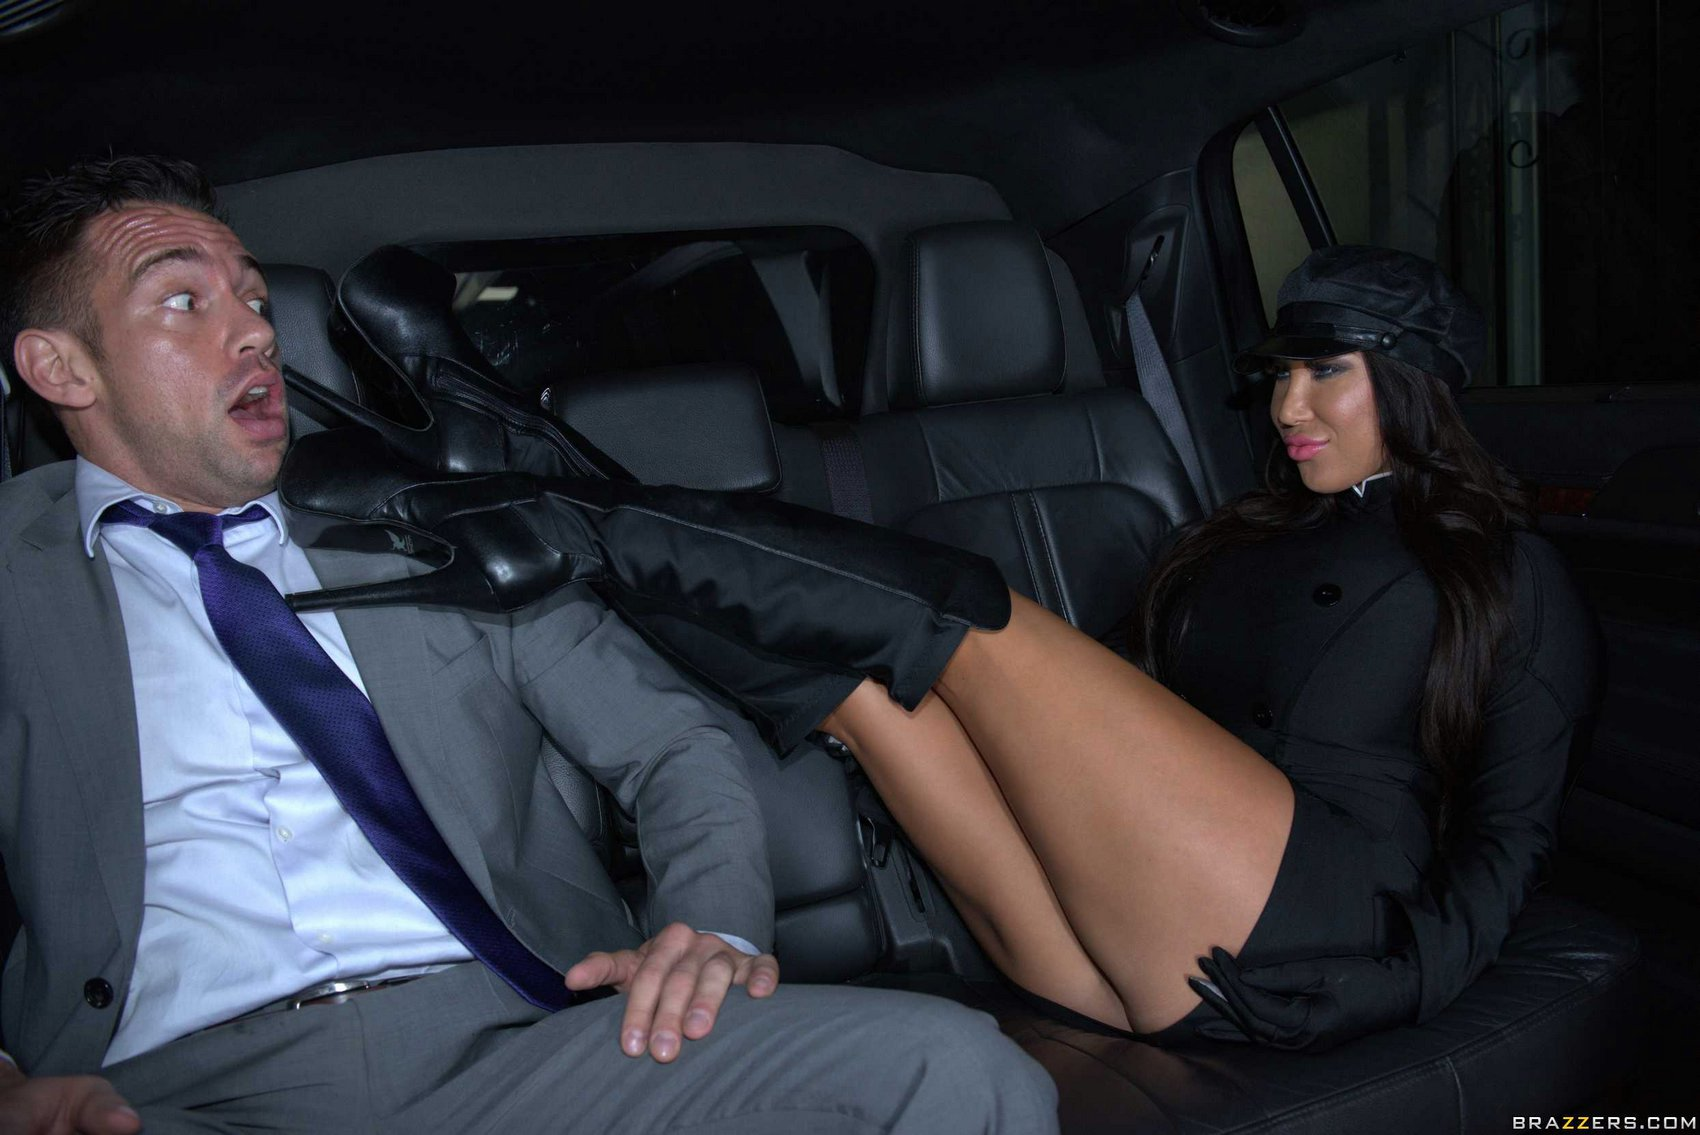 Hot whore Angelica Taylor in high boots fucking a big cock in a car.